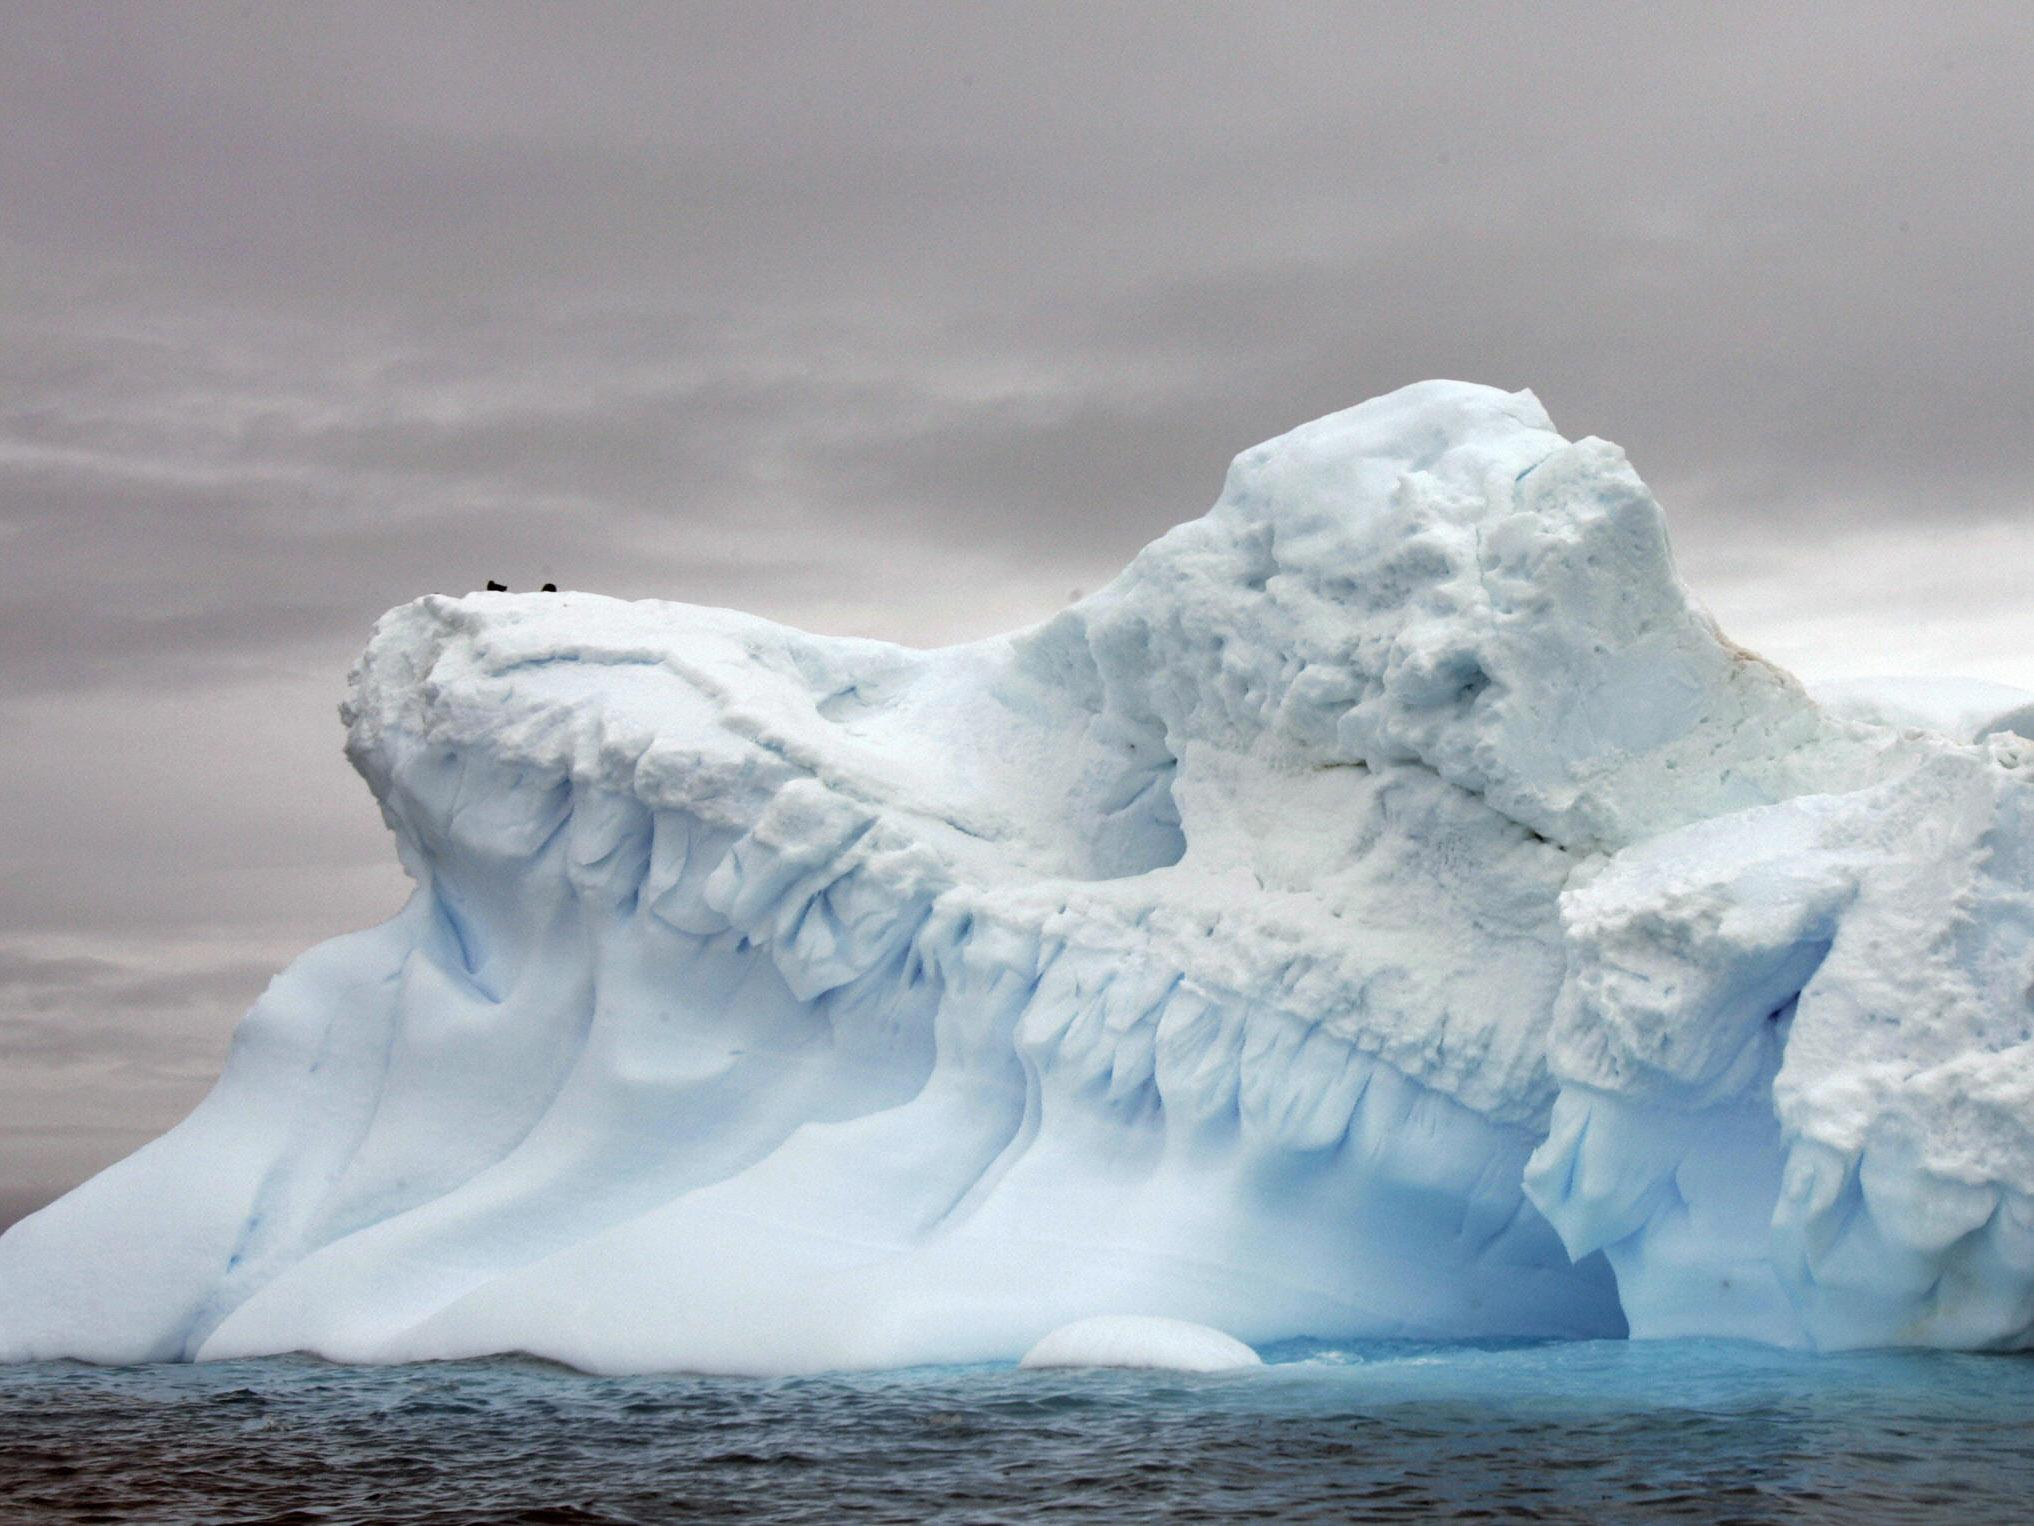 Global sea levels could rise 'up to five metres' if certain Antarctic ice sheets melt